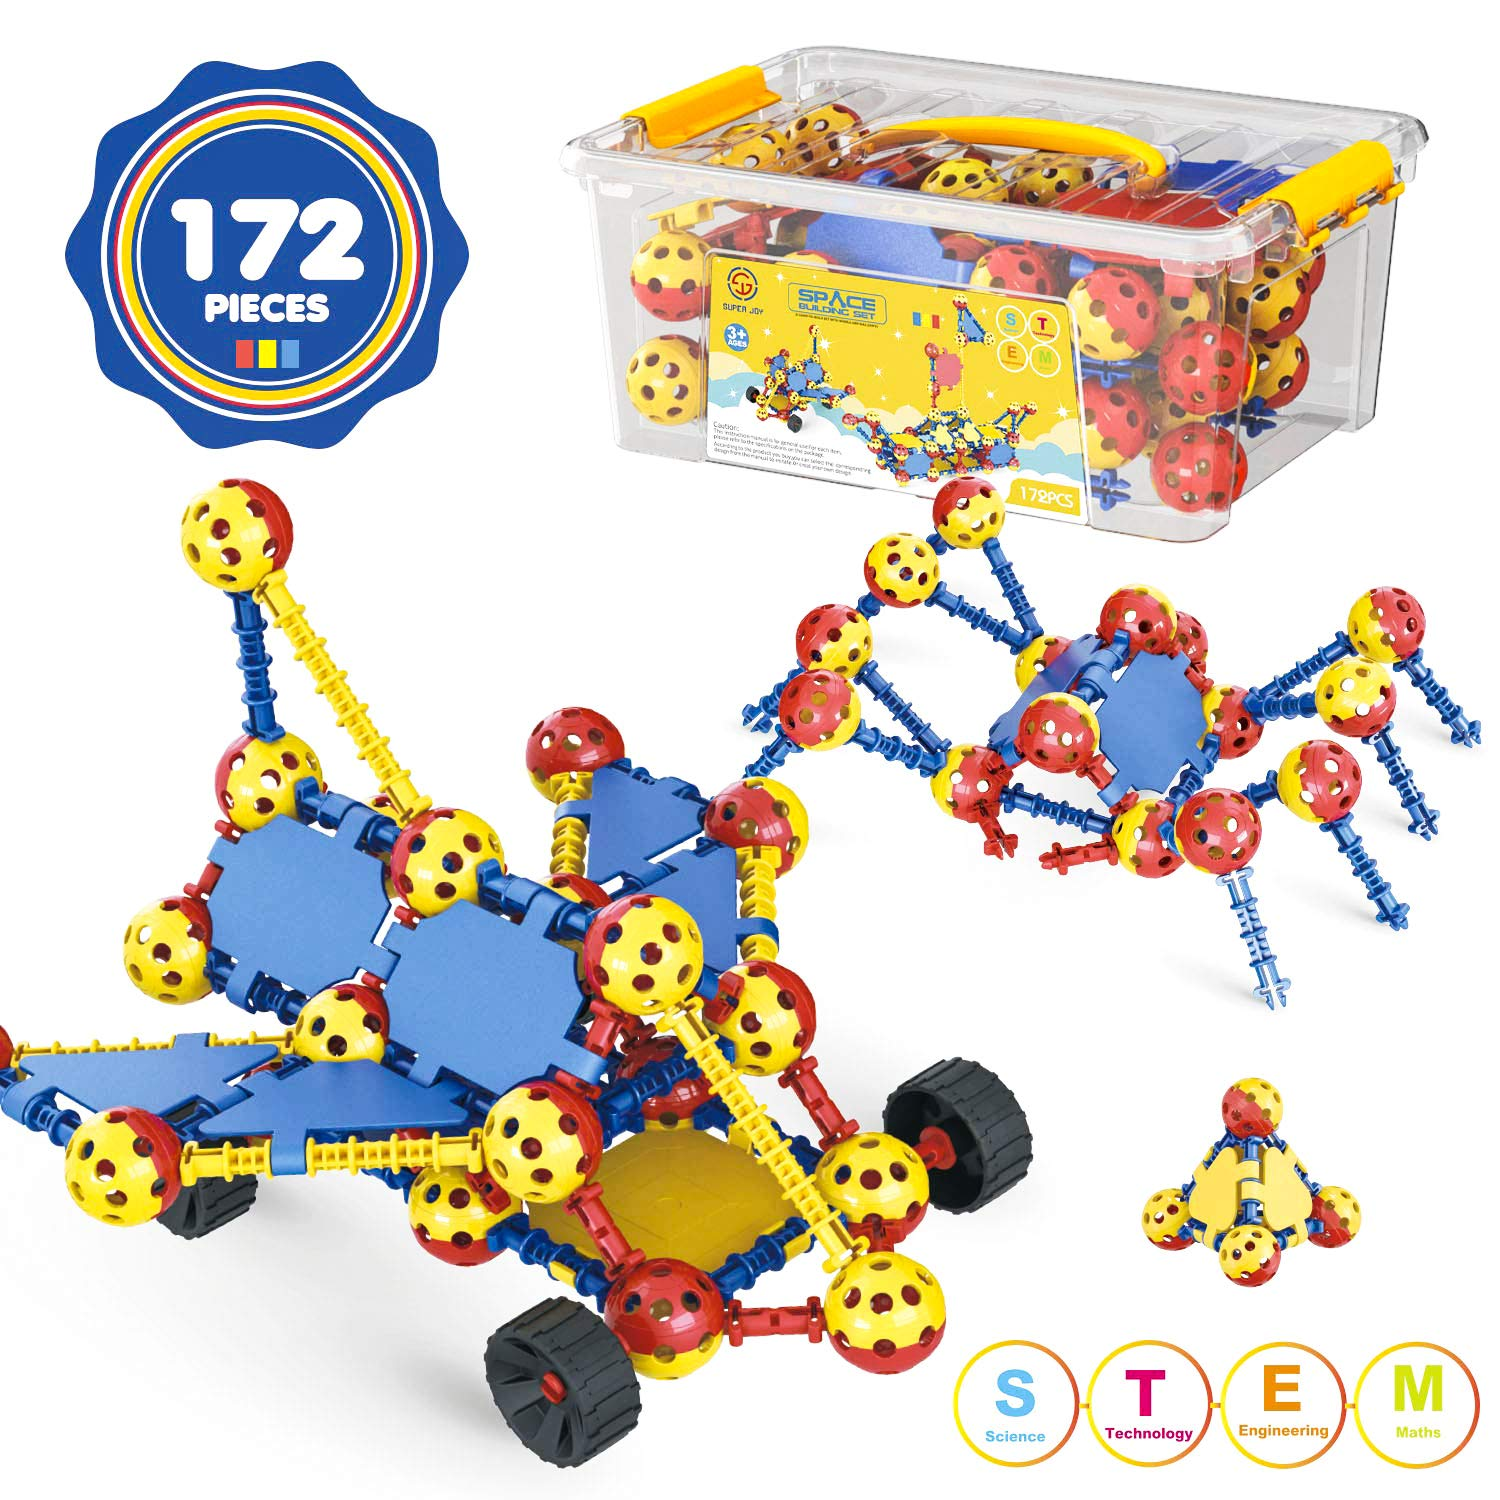 AOKESI STEM Building Toys for Kids 172 PCS Snap Together Building Kits | Engineering Early Learning Building Blocks Set Best Gift for Ages 3 ,4, 5, 6, 7 and 8 Year Old Boys and Girls |Top Blocks Game